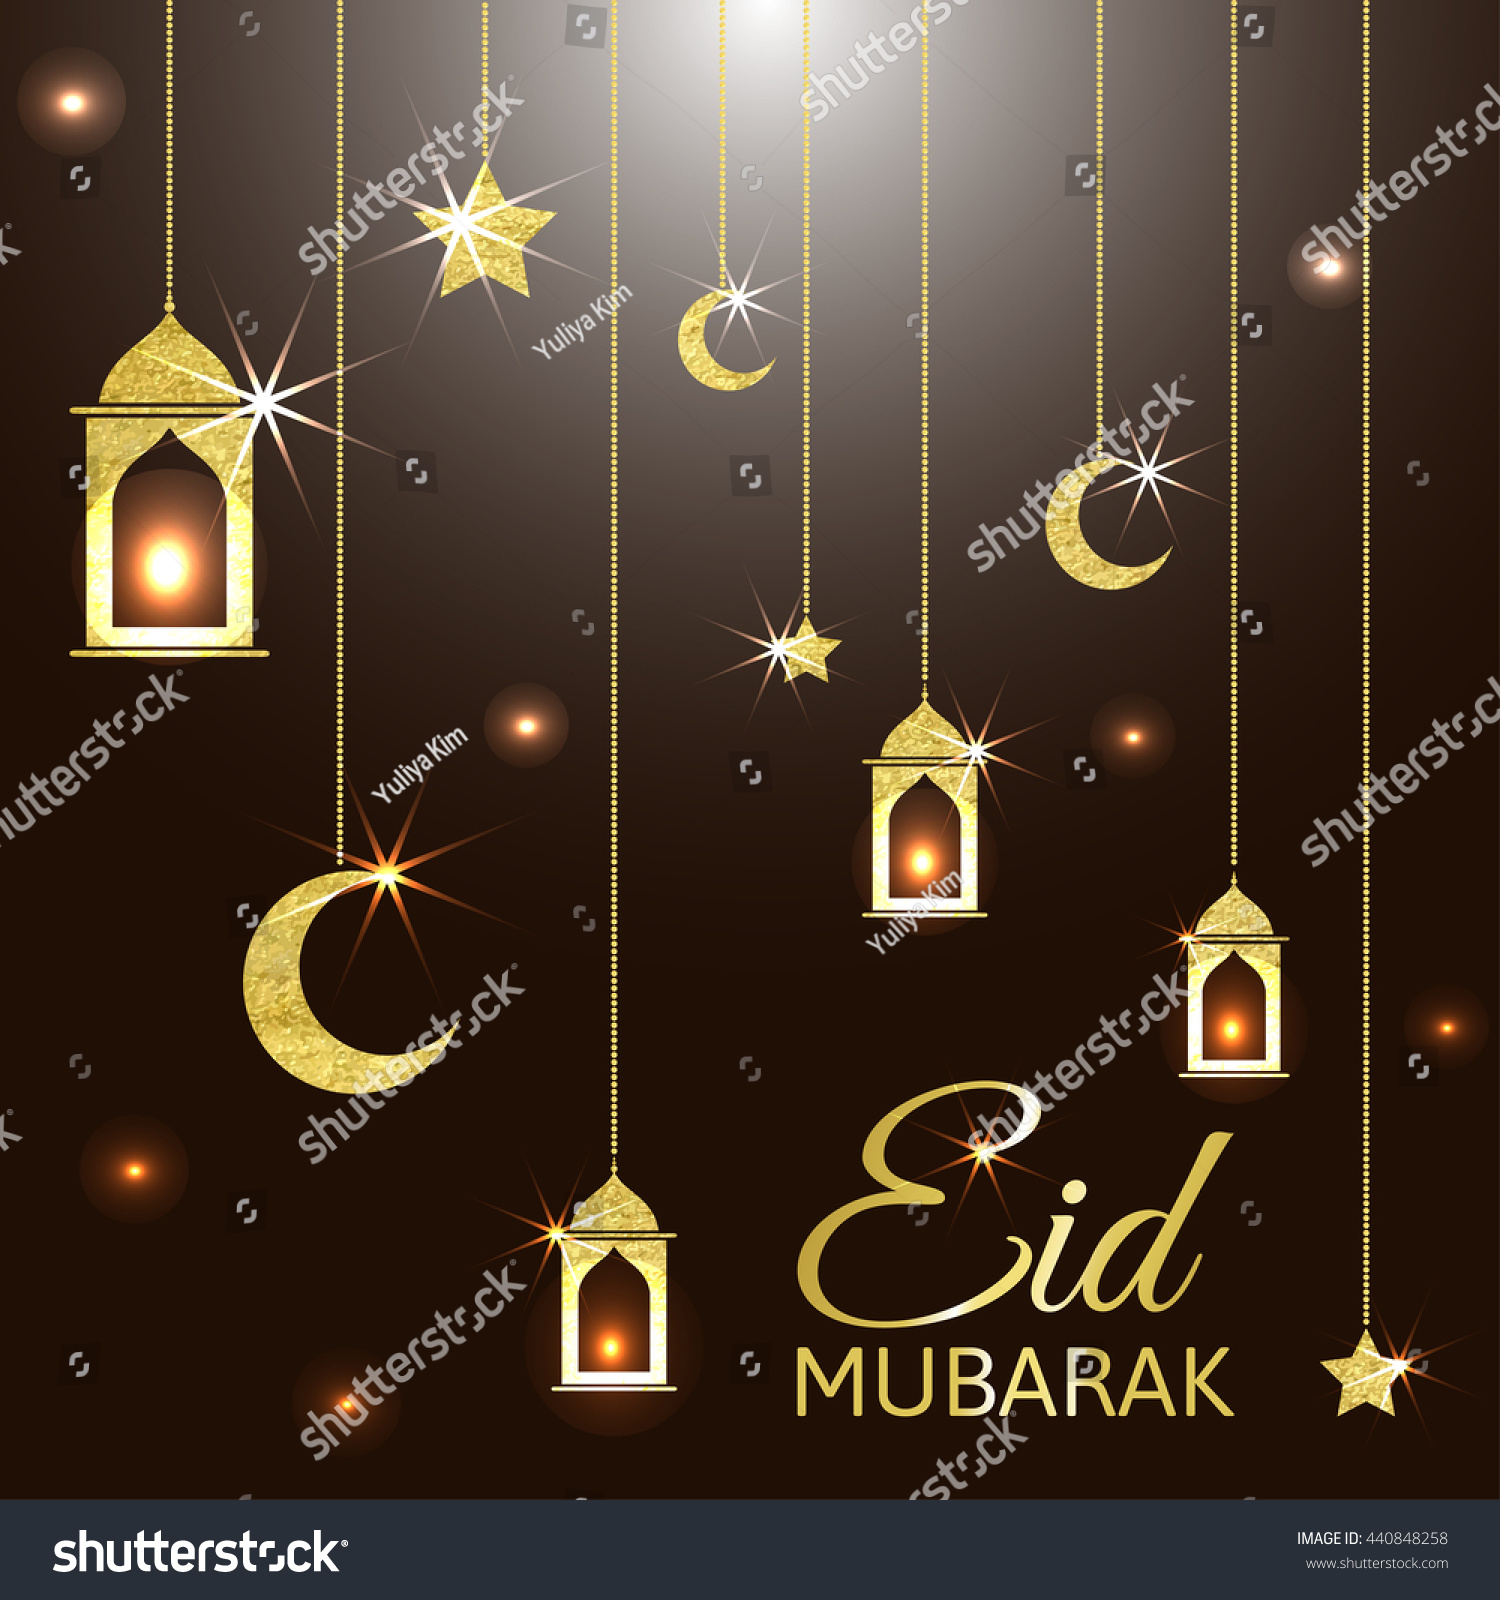 Simple Moon Star Light Eid Al-Fitr Decorations - stock-vector-decorative-card-for-eid-al-adha-festival-elegant-gold-moon-crescent-lantern-and-star-on-abstract-440848258  Graphic_22294 .jpg